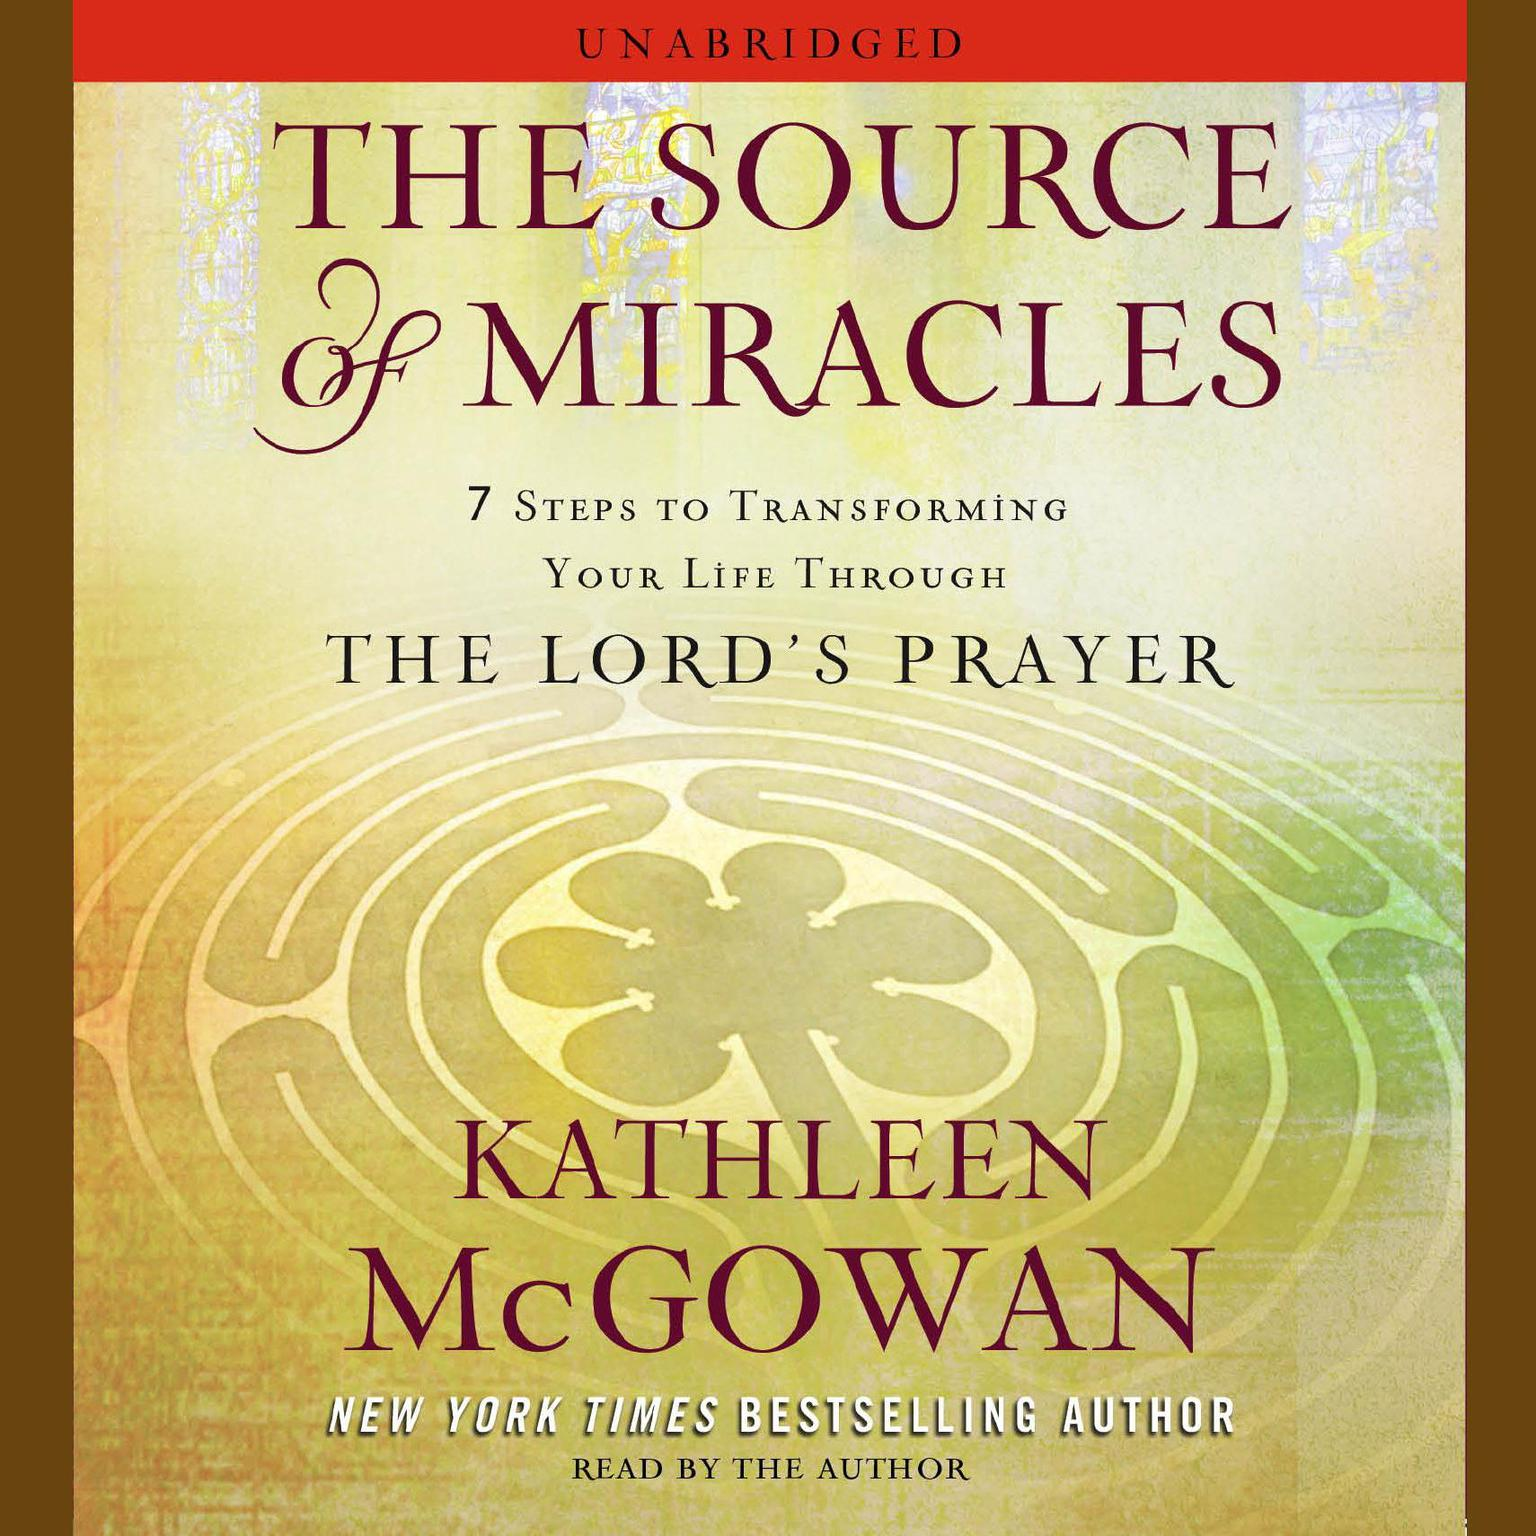 Printable The Source of Miracles: 7 Steps to Transforming Your Life through the Lord's Prayer Audiobook Cover Art